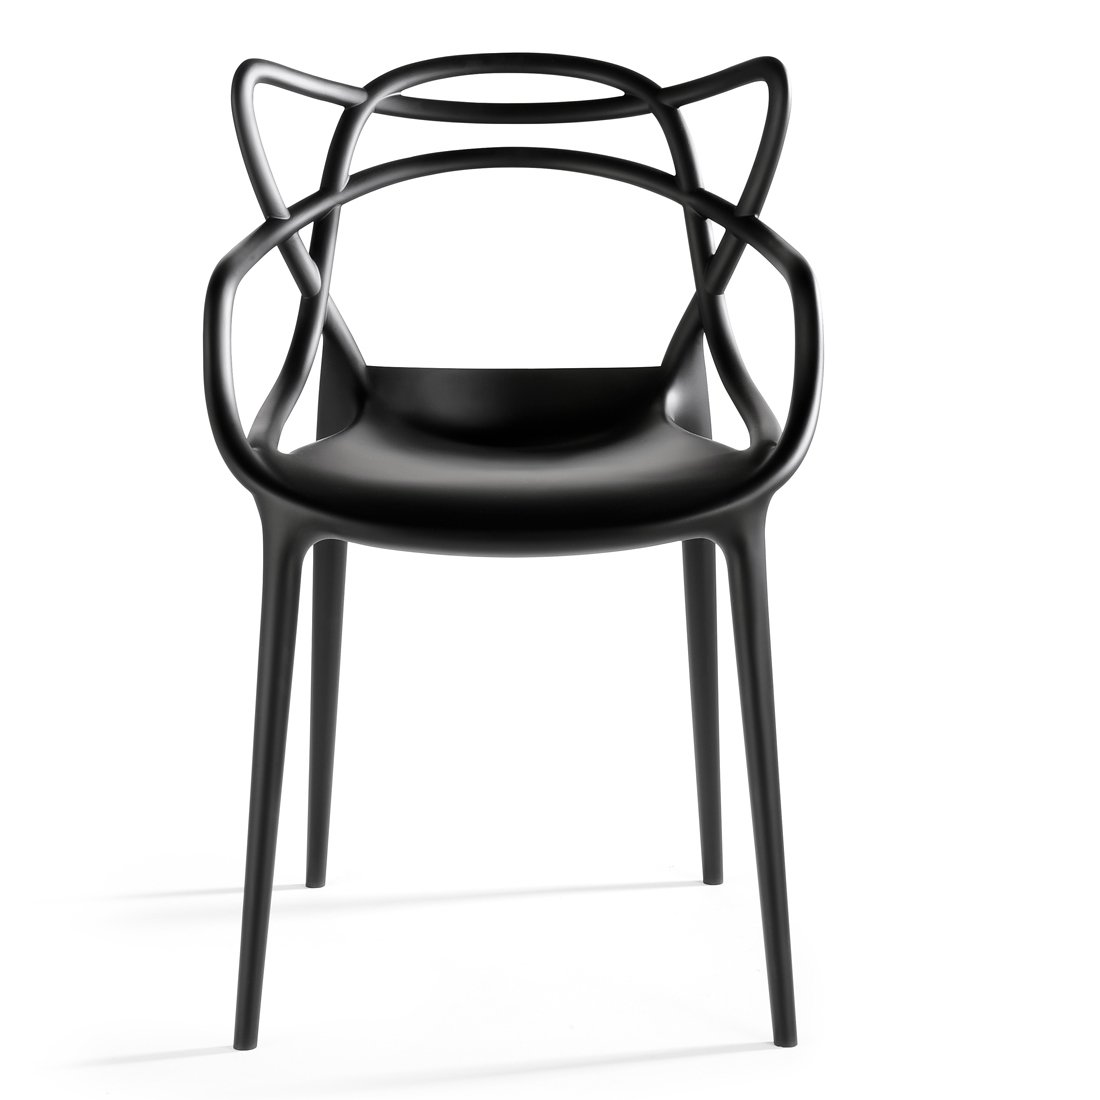 2xhome – Single 1 Chair Total Black Dining Room Chair – Modern Contemporary Designer Designed Popular Home Office Work Indoor Outdoor Armchair Living Room Kitchen Bed Bedroom Patio Arm Chair